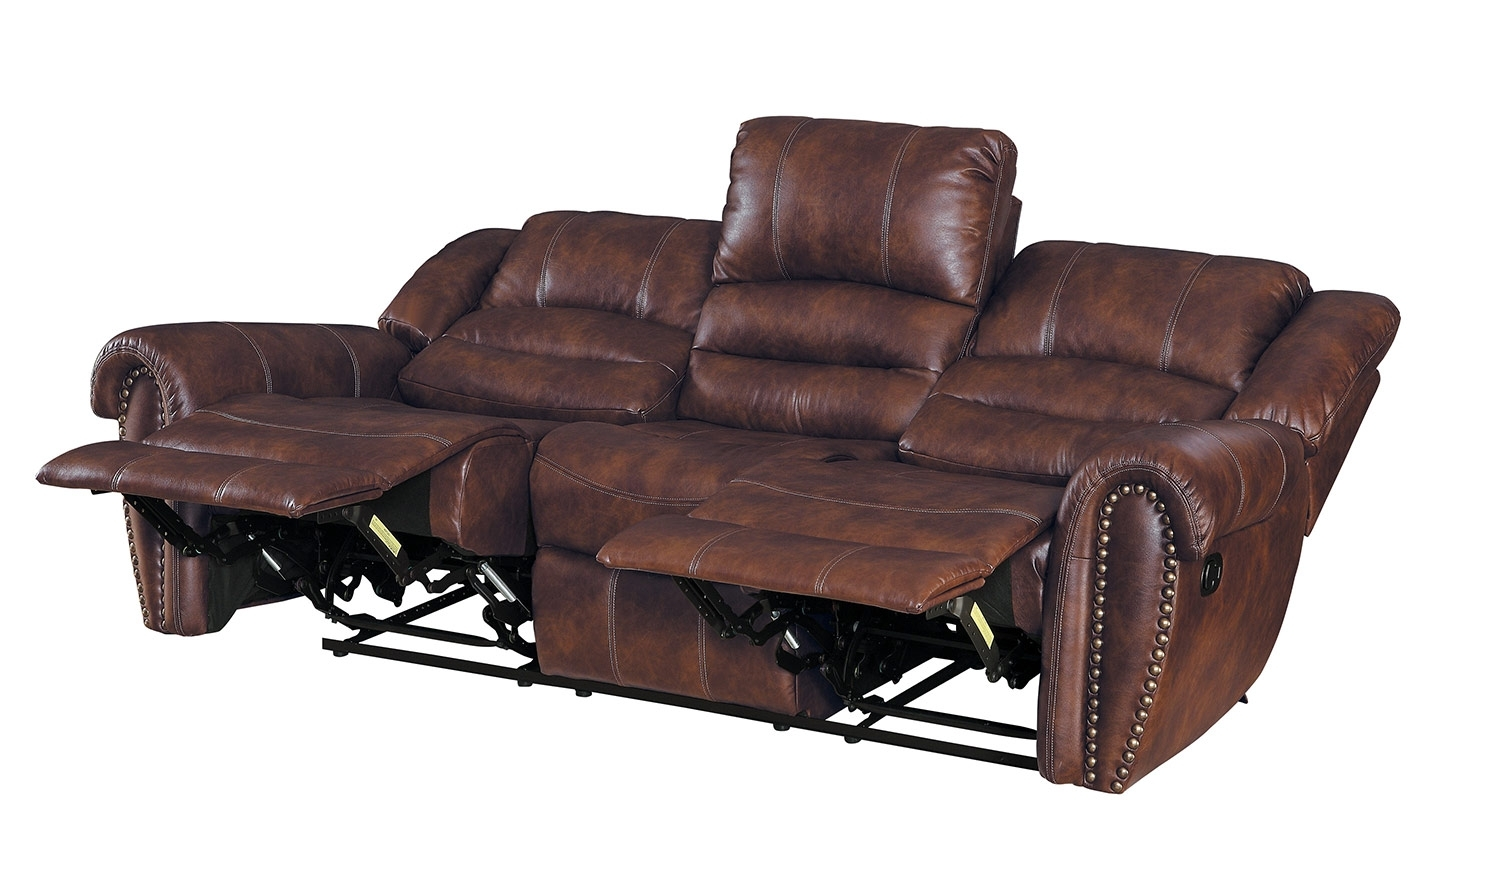 Homelegance Center Hill Reclining Sectional Set - Dark Brown 9668Nsd within Clyde Saddle 3 Piece Power Reclining Sectionals With Power Headrest & Usb (Image 17 of 30)